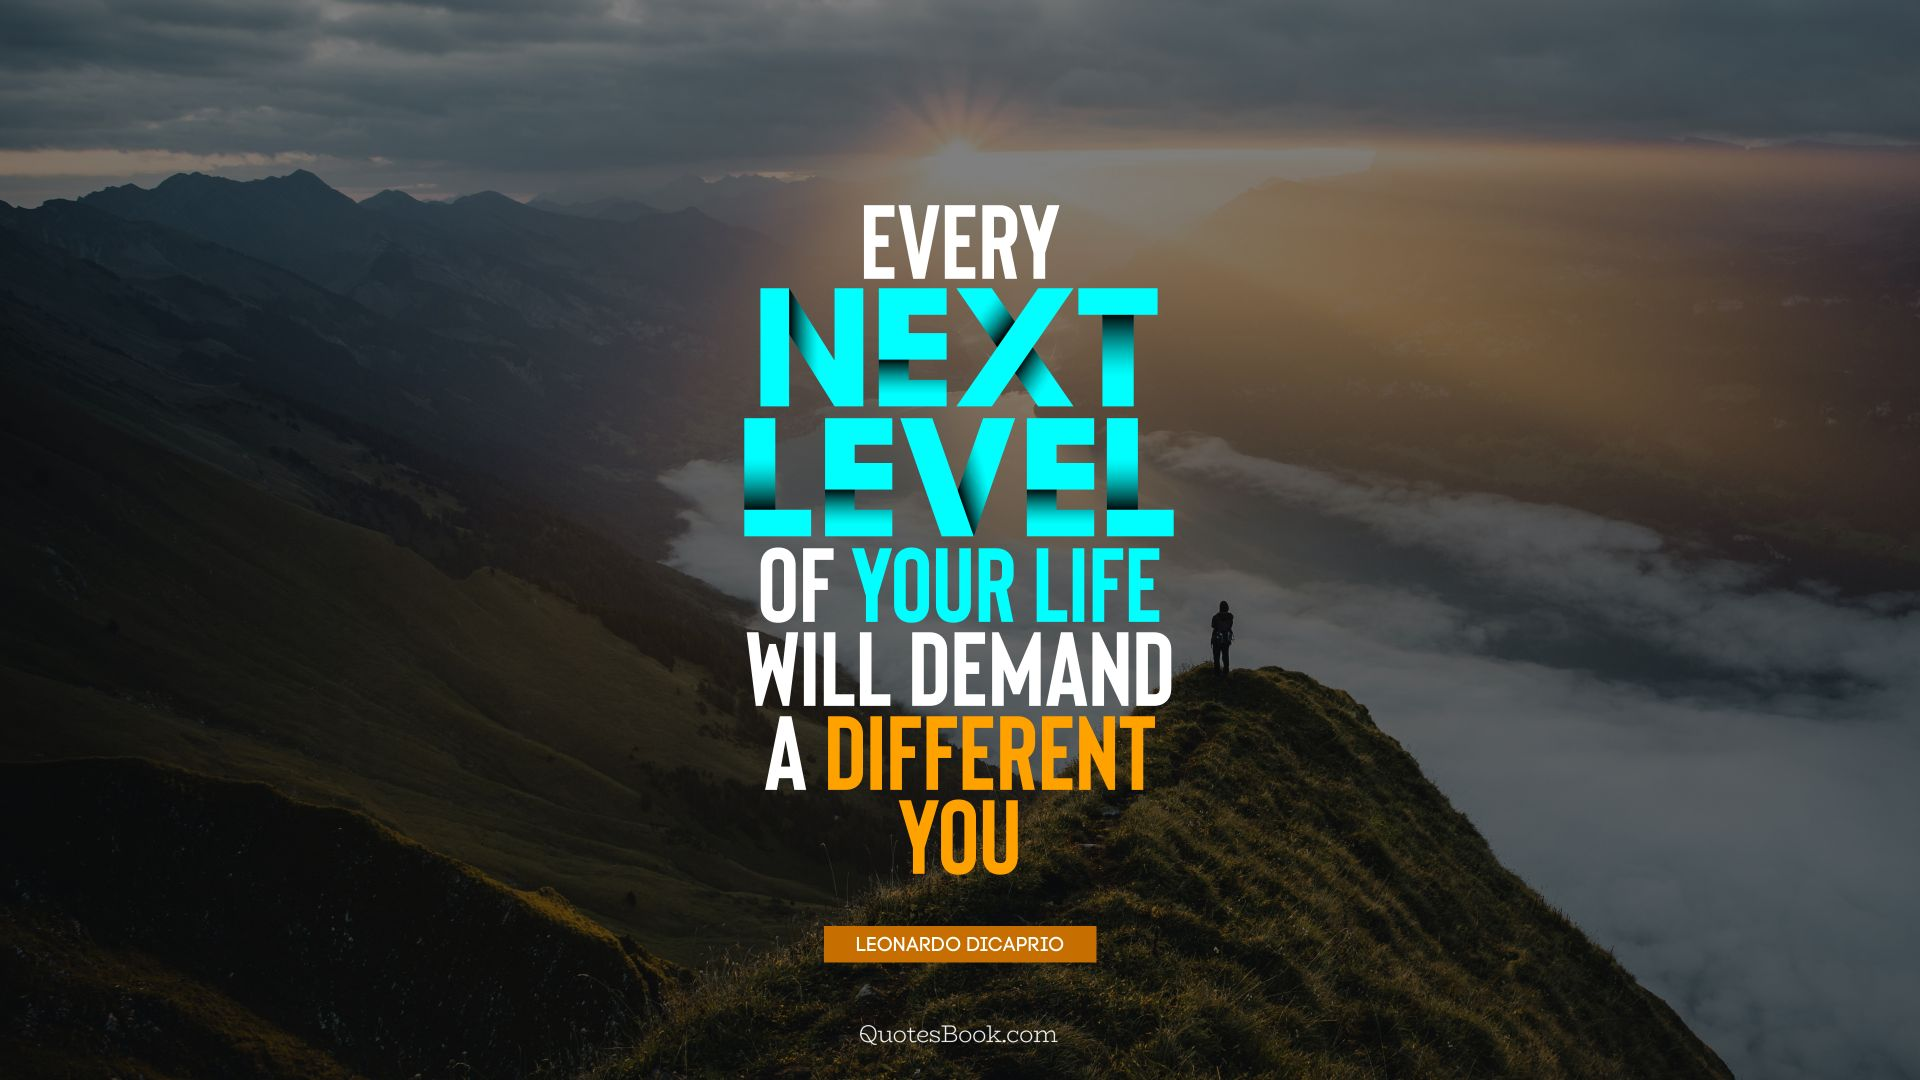 Every next level of your life will demand a different you. - Quote by Leonardo DiCaprio